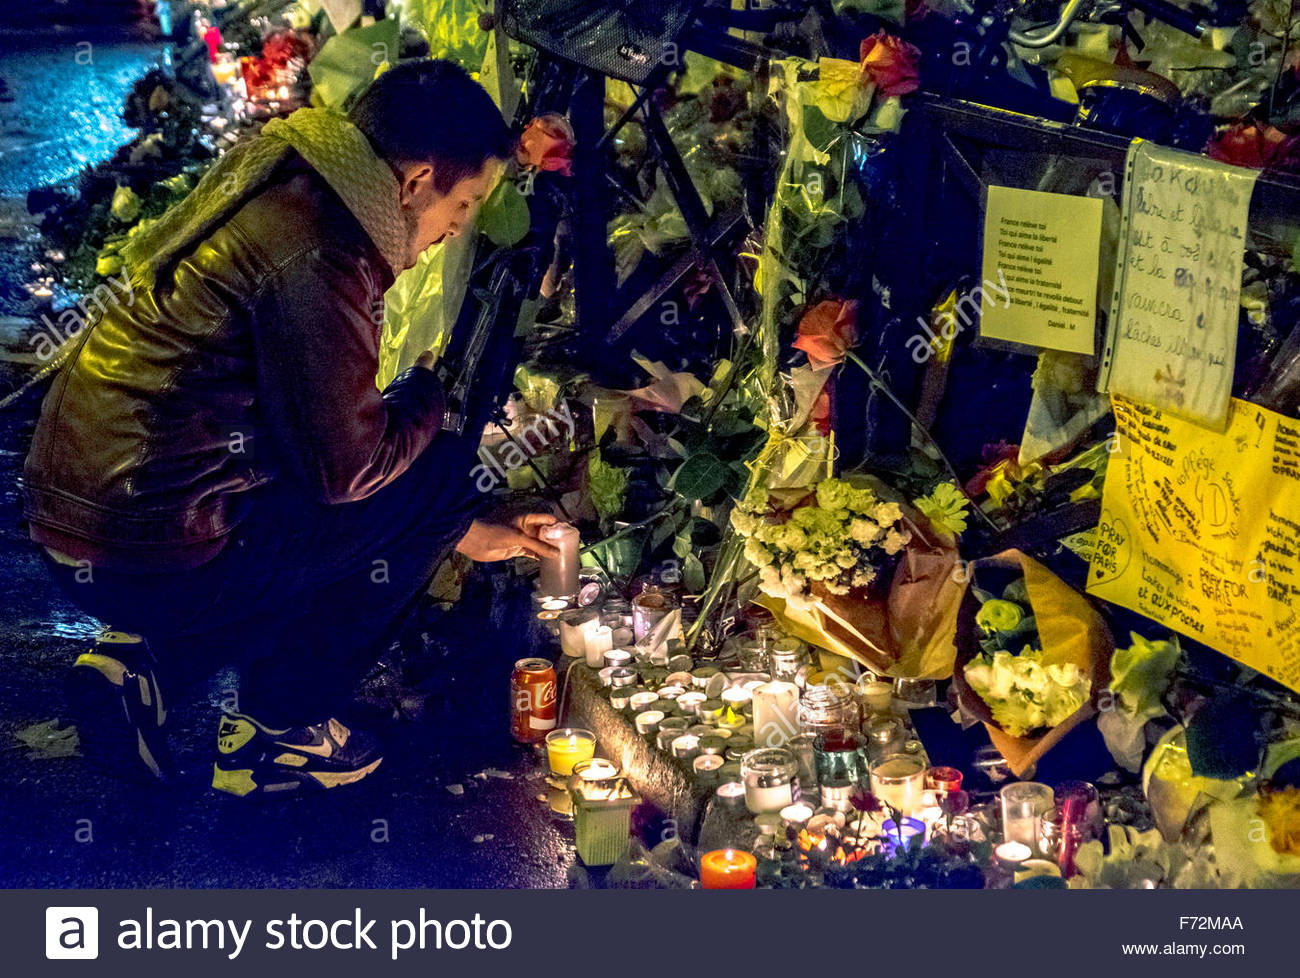 Paris, restaurant la Belle Equipe 20/11/2015. French tributes to the victims of the terrorist attacks of November Stock Photo